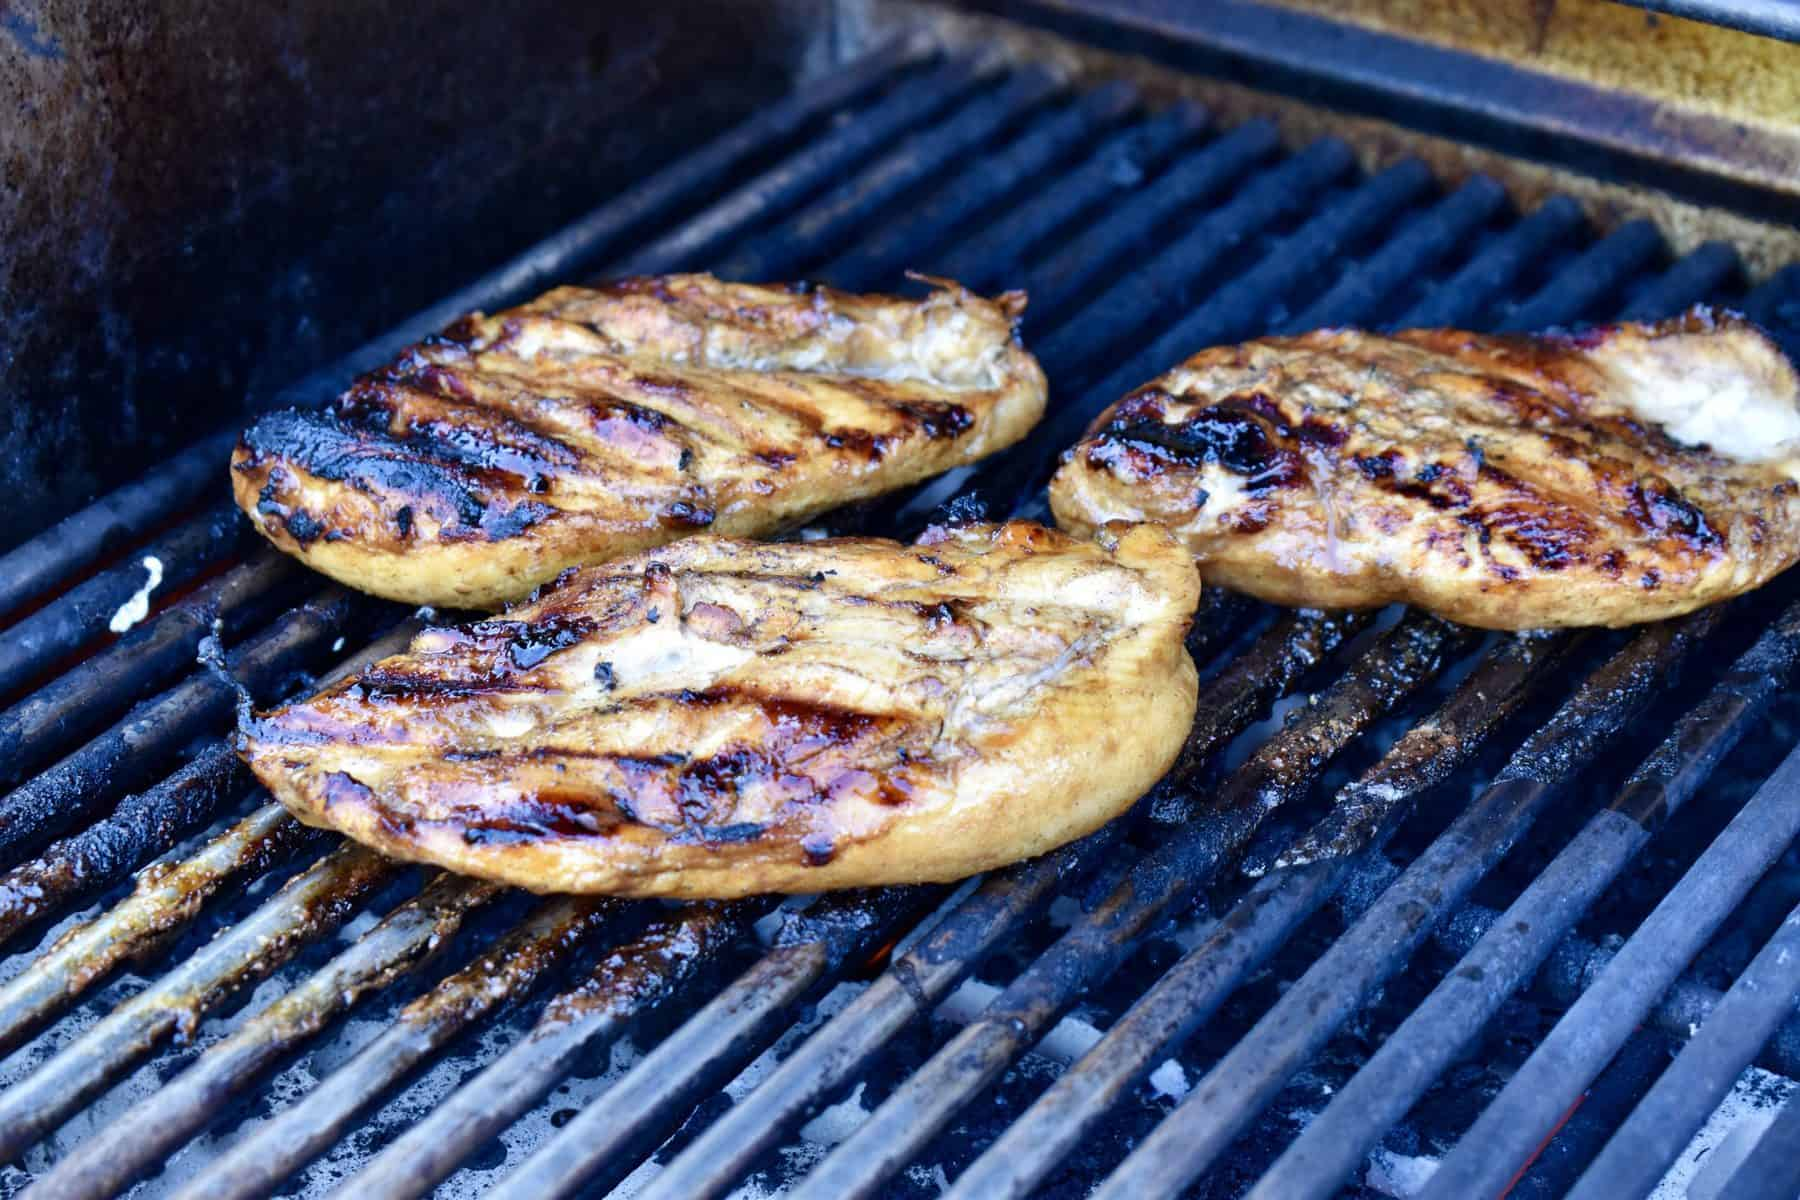 grilled meat on a barbecue.